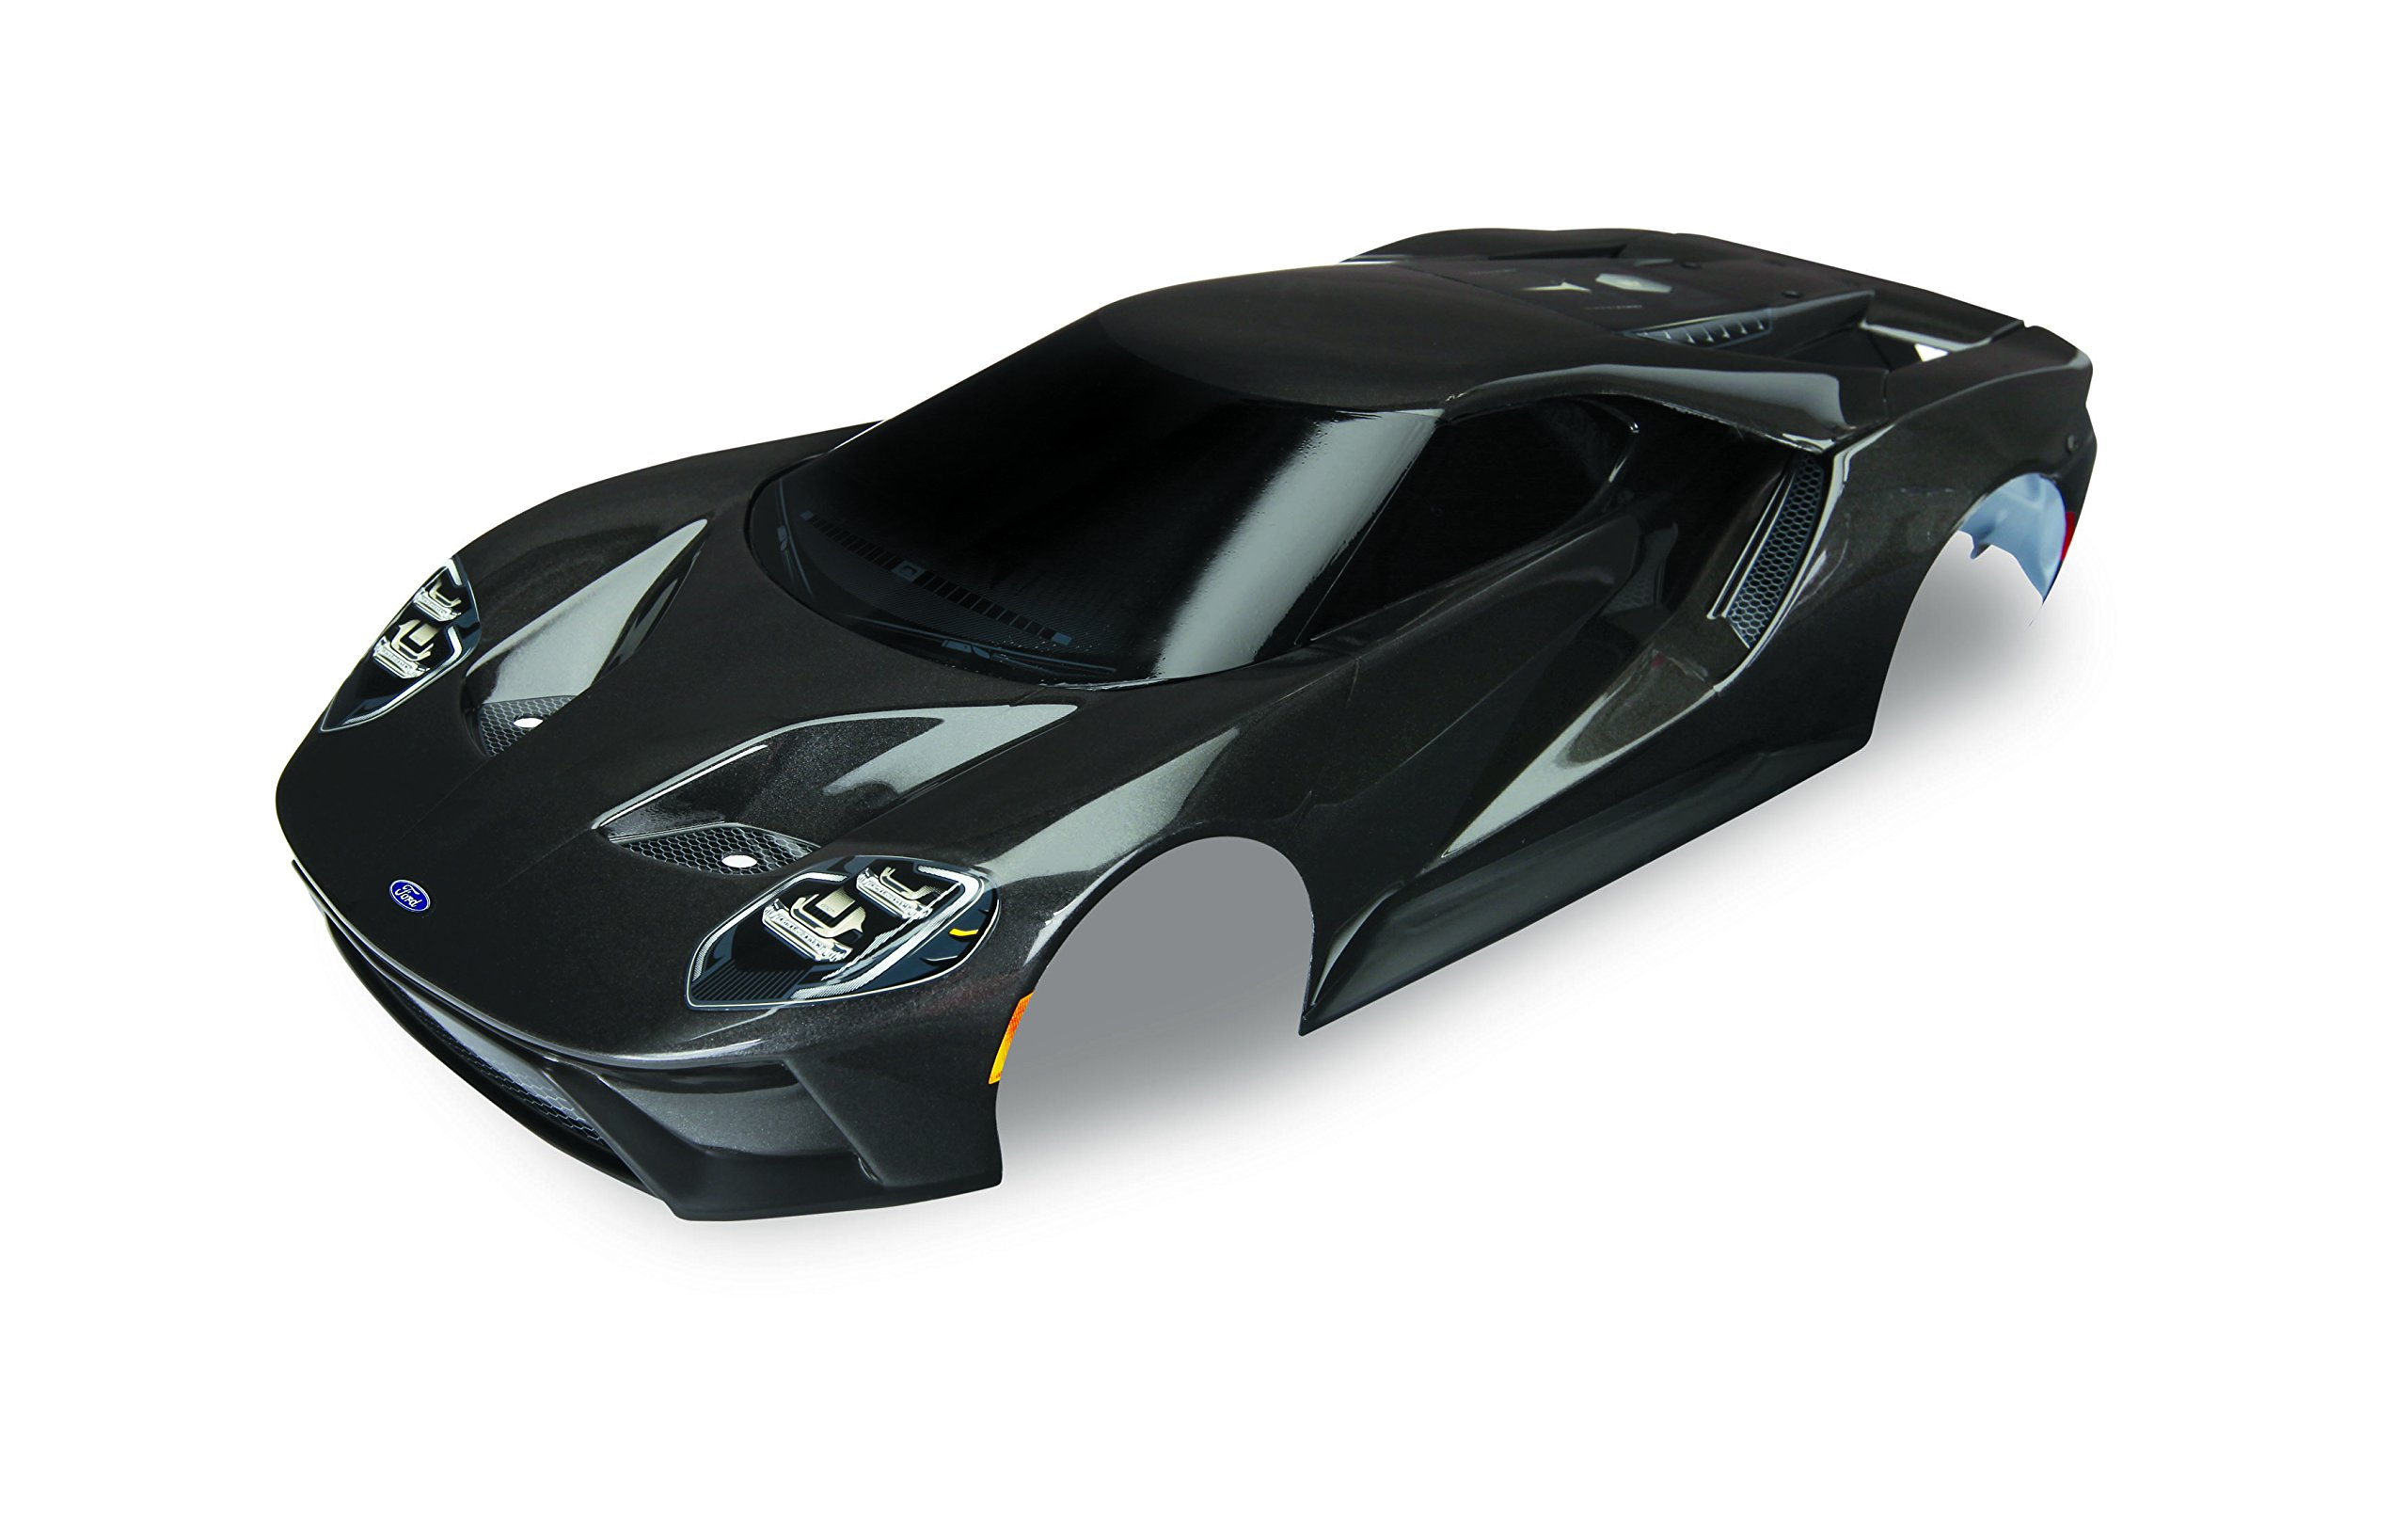 Traxxas Black Painted Ford Gt Body (1: 10 Scale) Vehicle